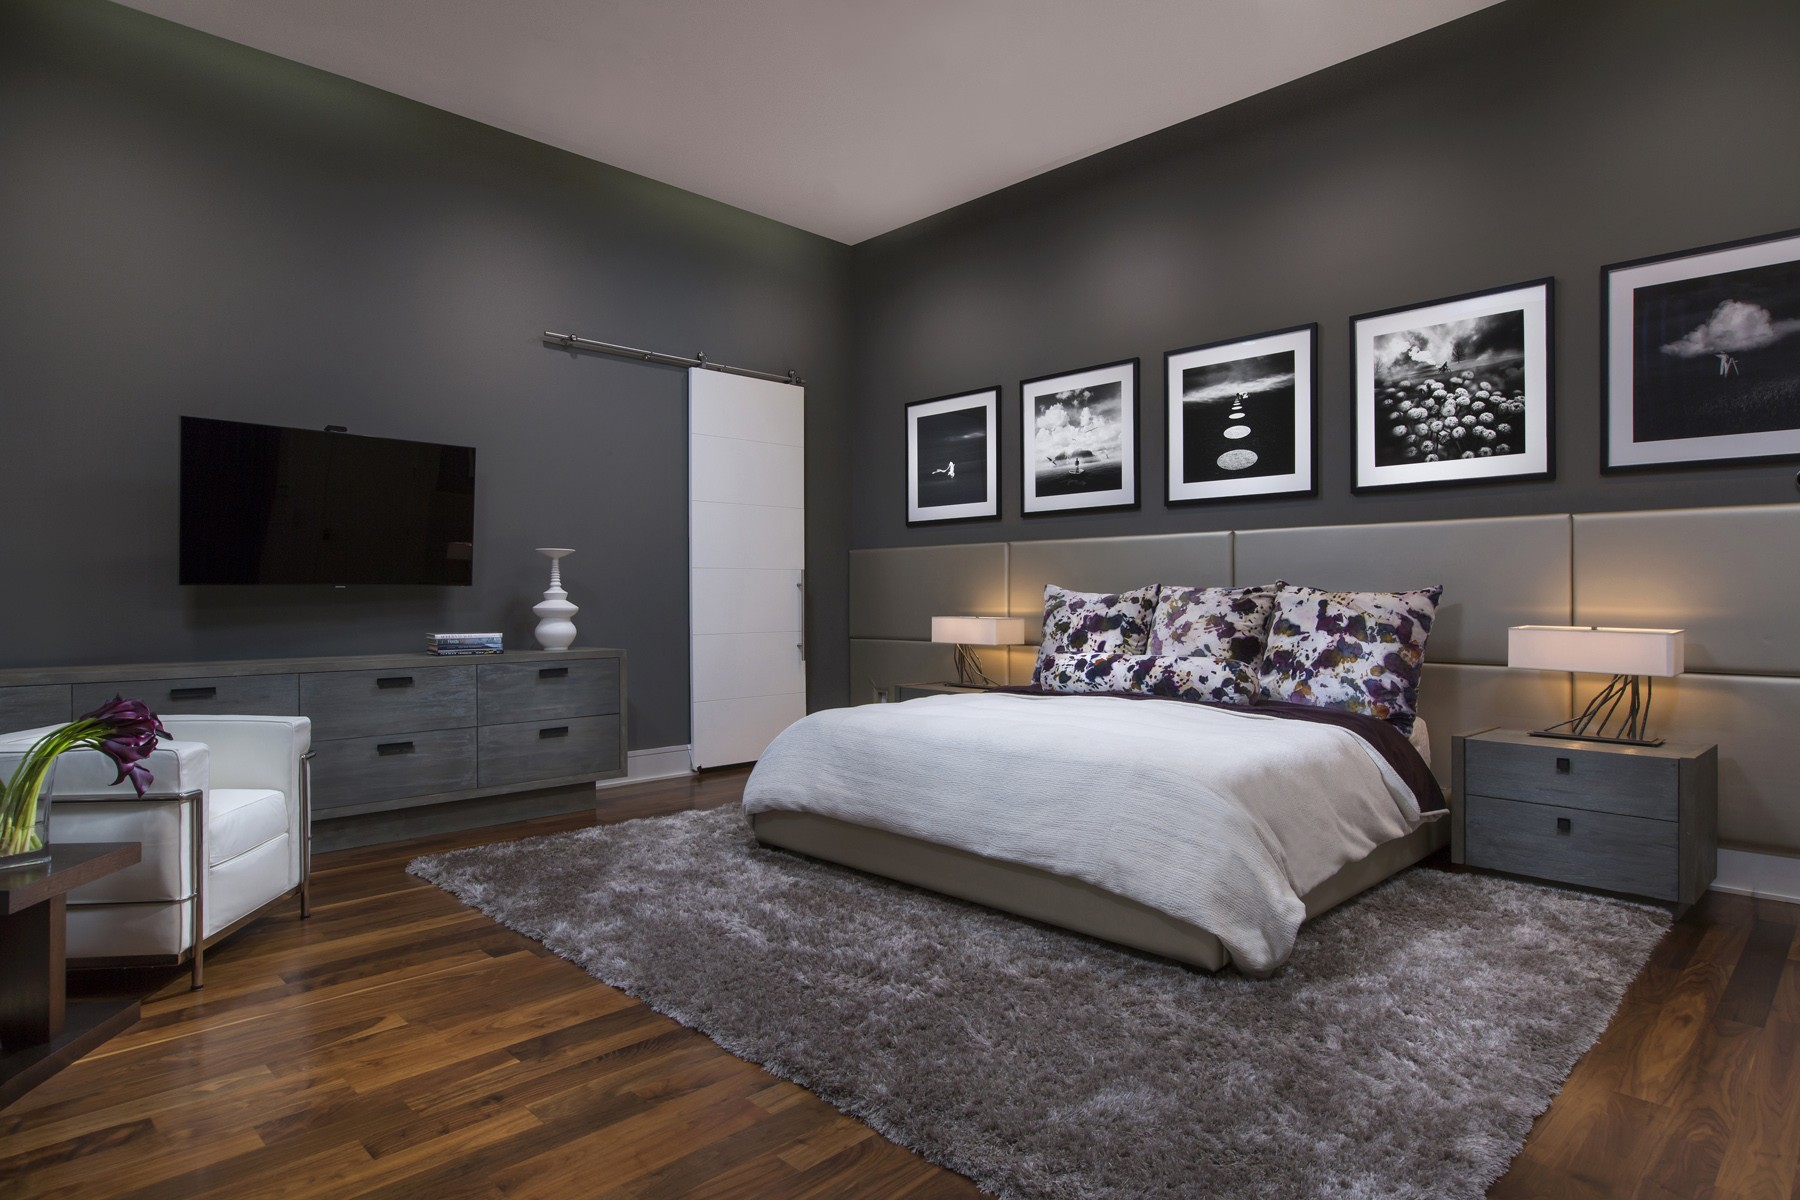 Modern interior paint trends for 2018 phil kean design group Master bedroom colors for 2018